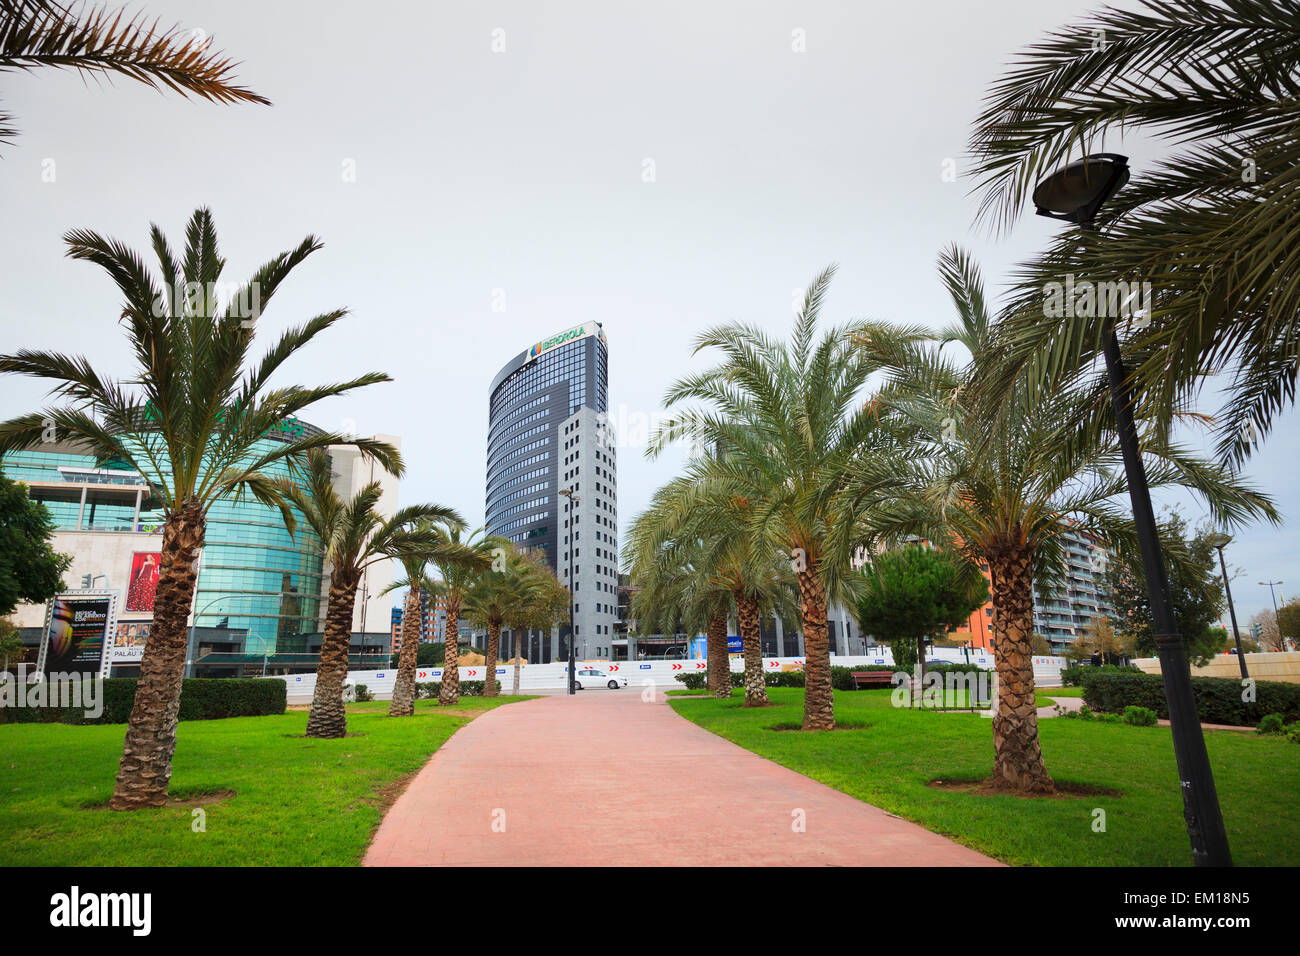 Palm tree lined path in the Garden of the Turia looking towards the Iberdrola building in Valencia Stock Photo